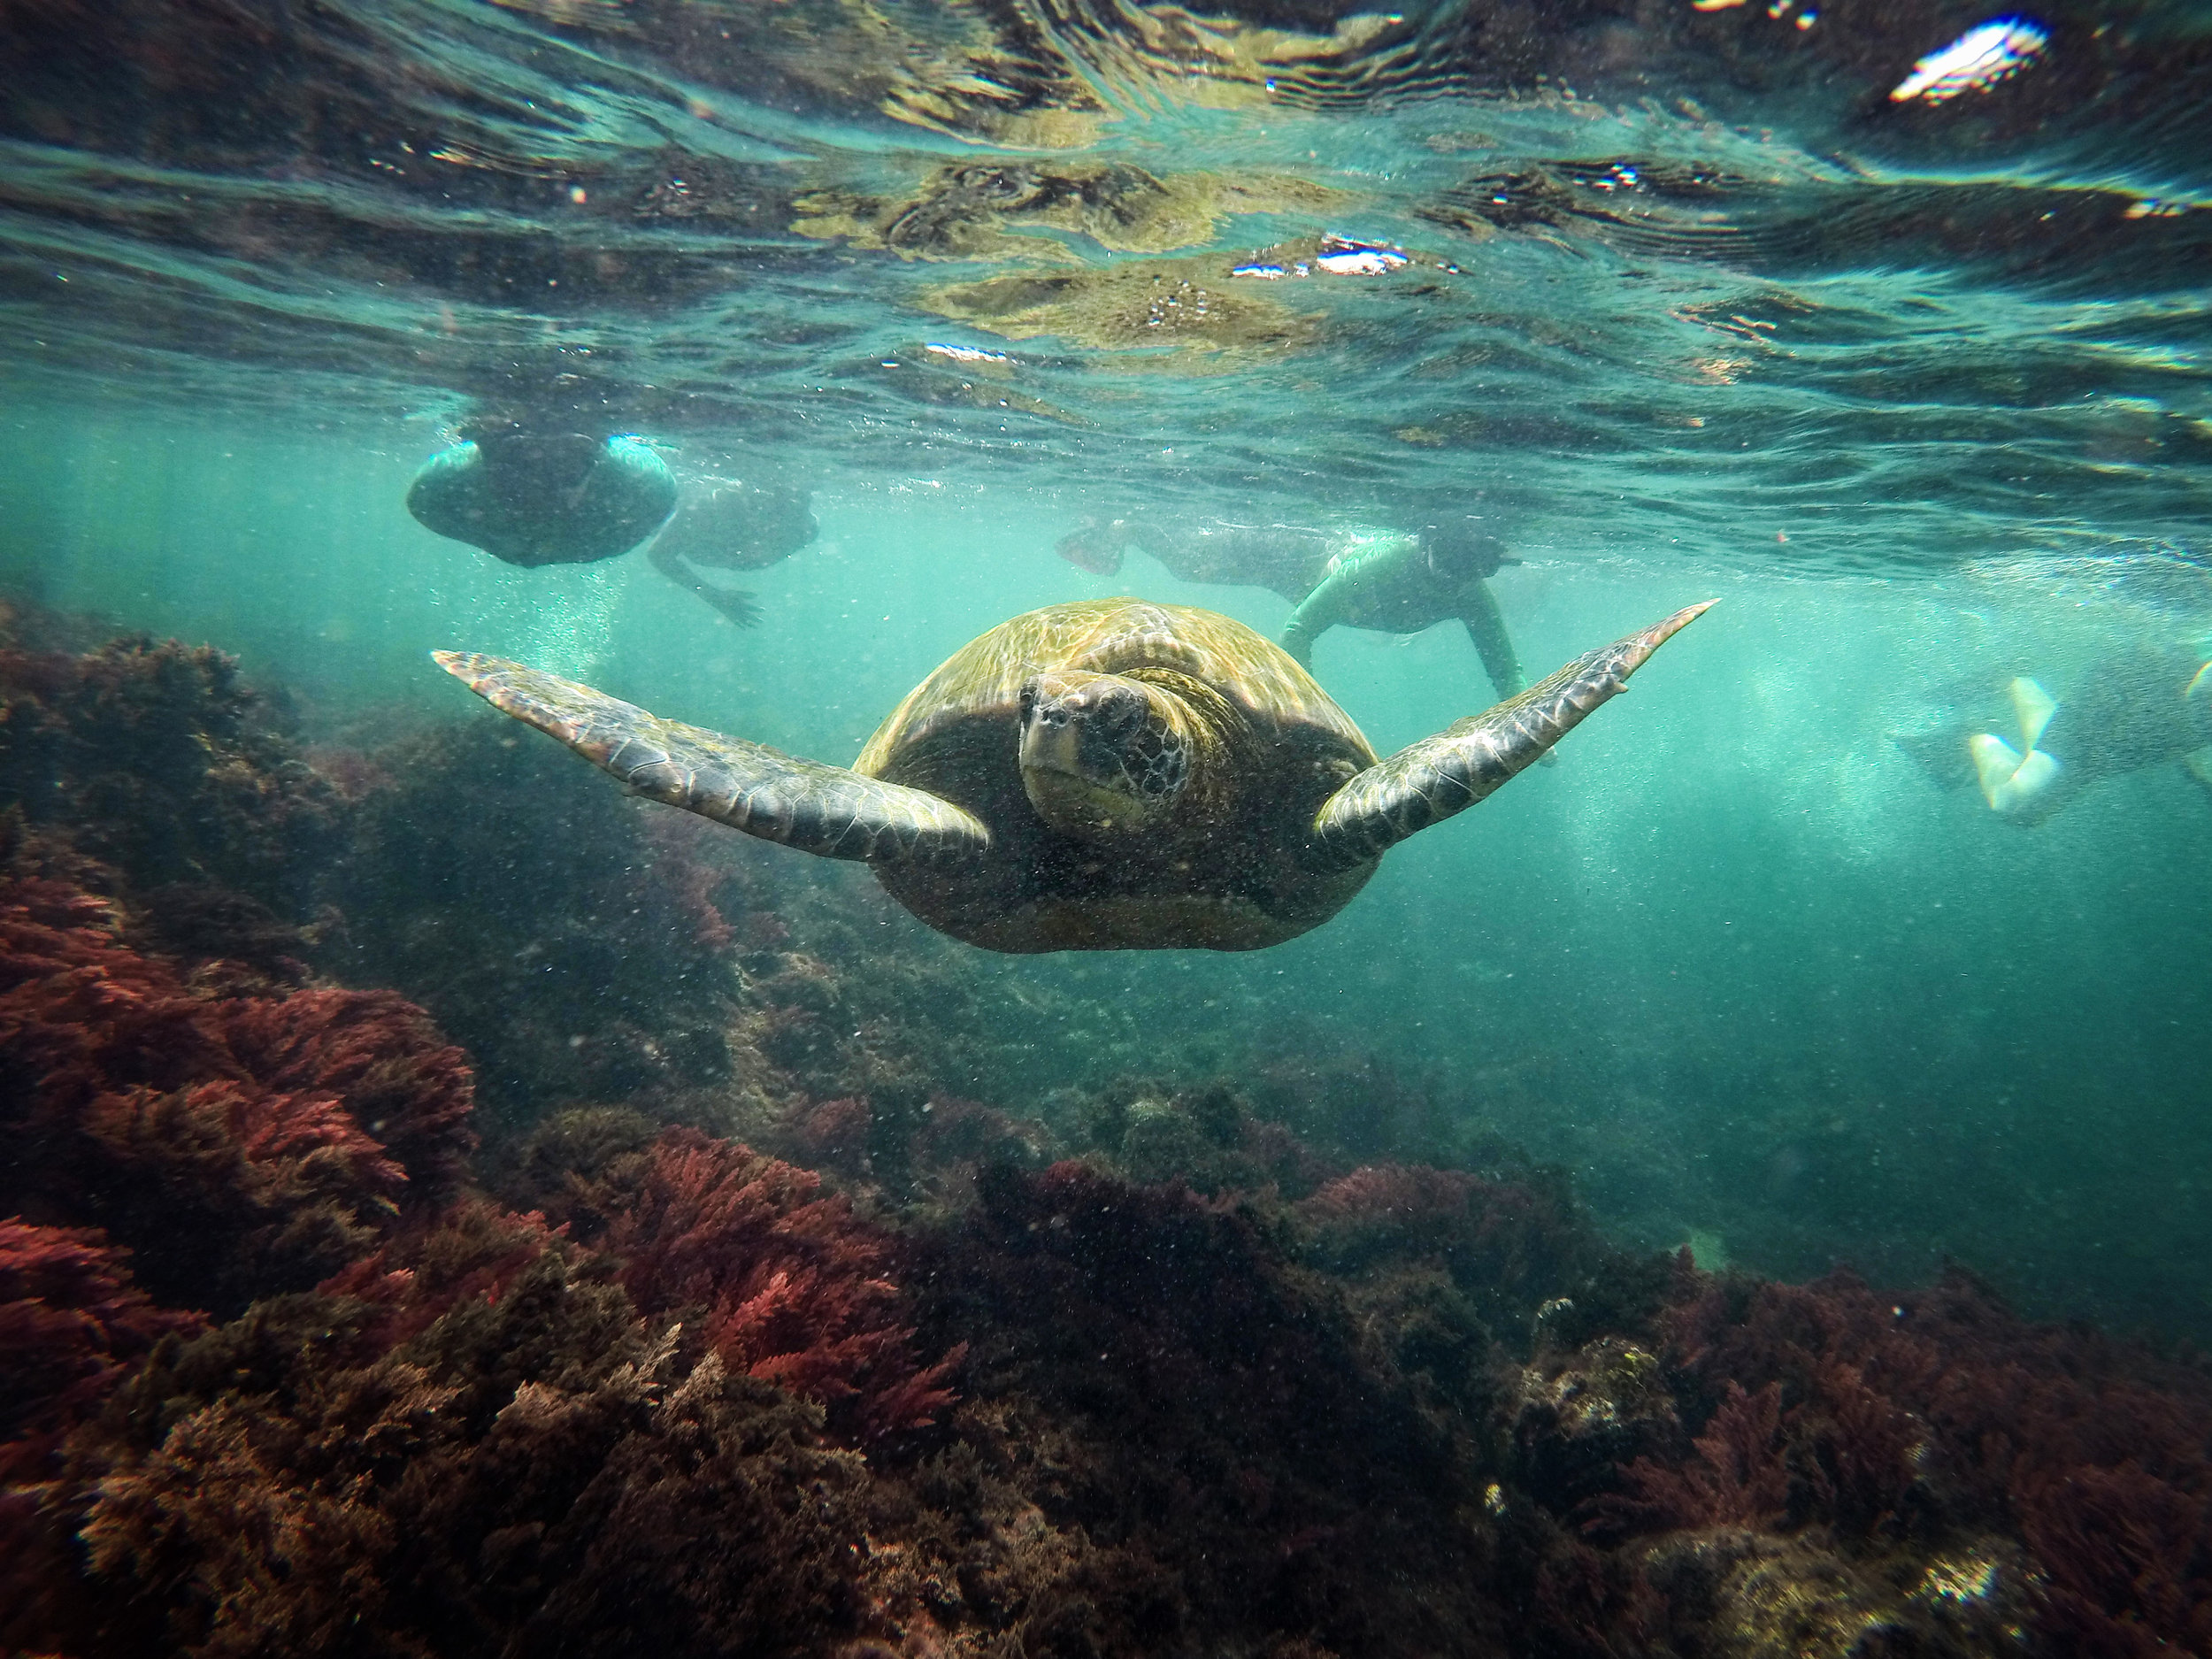 A green sea turtle leads a group of snorkelers through Los Tuneles off Isabela Island